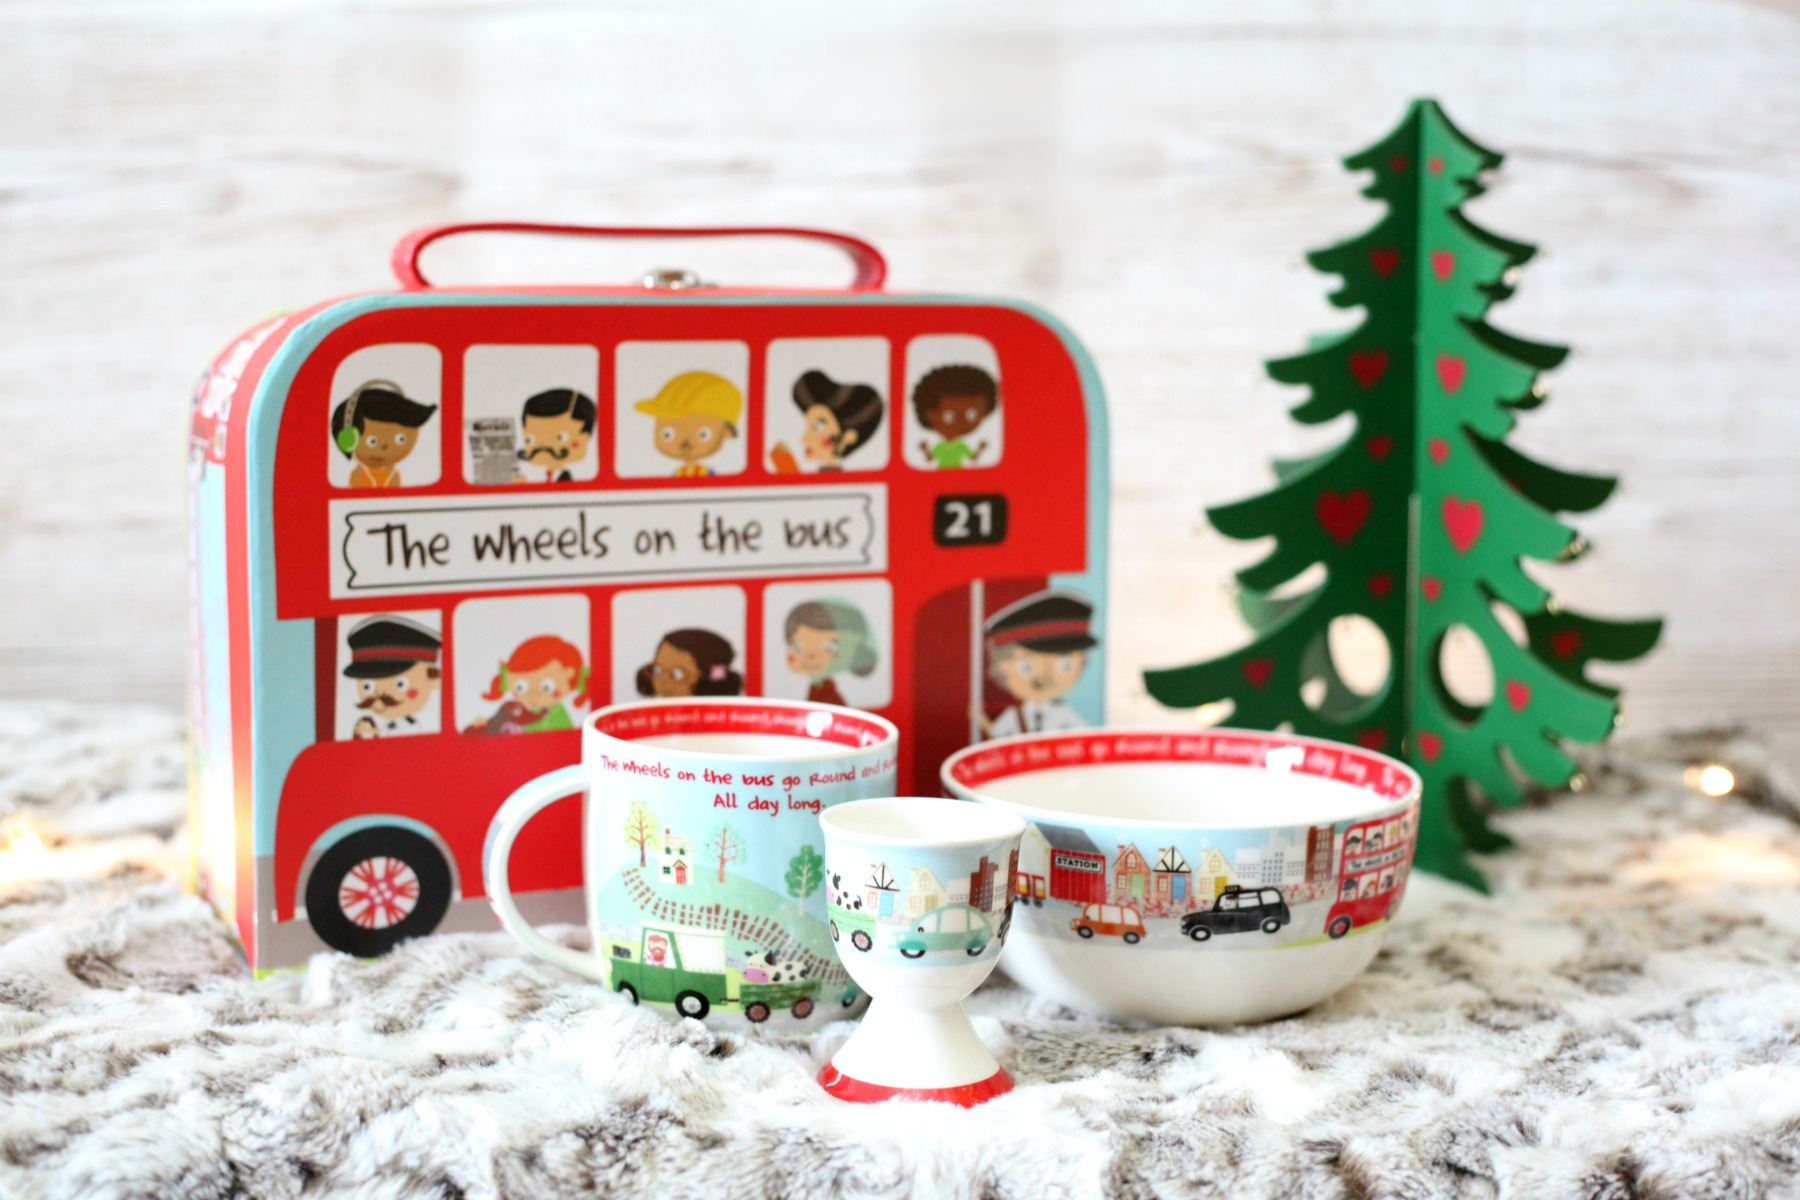 Stuck for toddler Christmas gift ideas? The Wheels of the Bus Breakfast Set